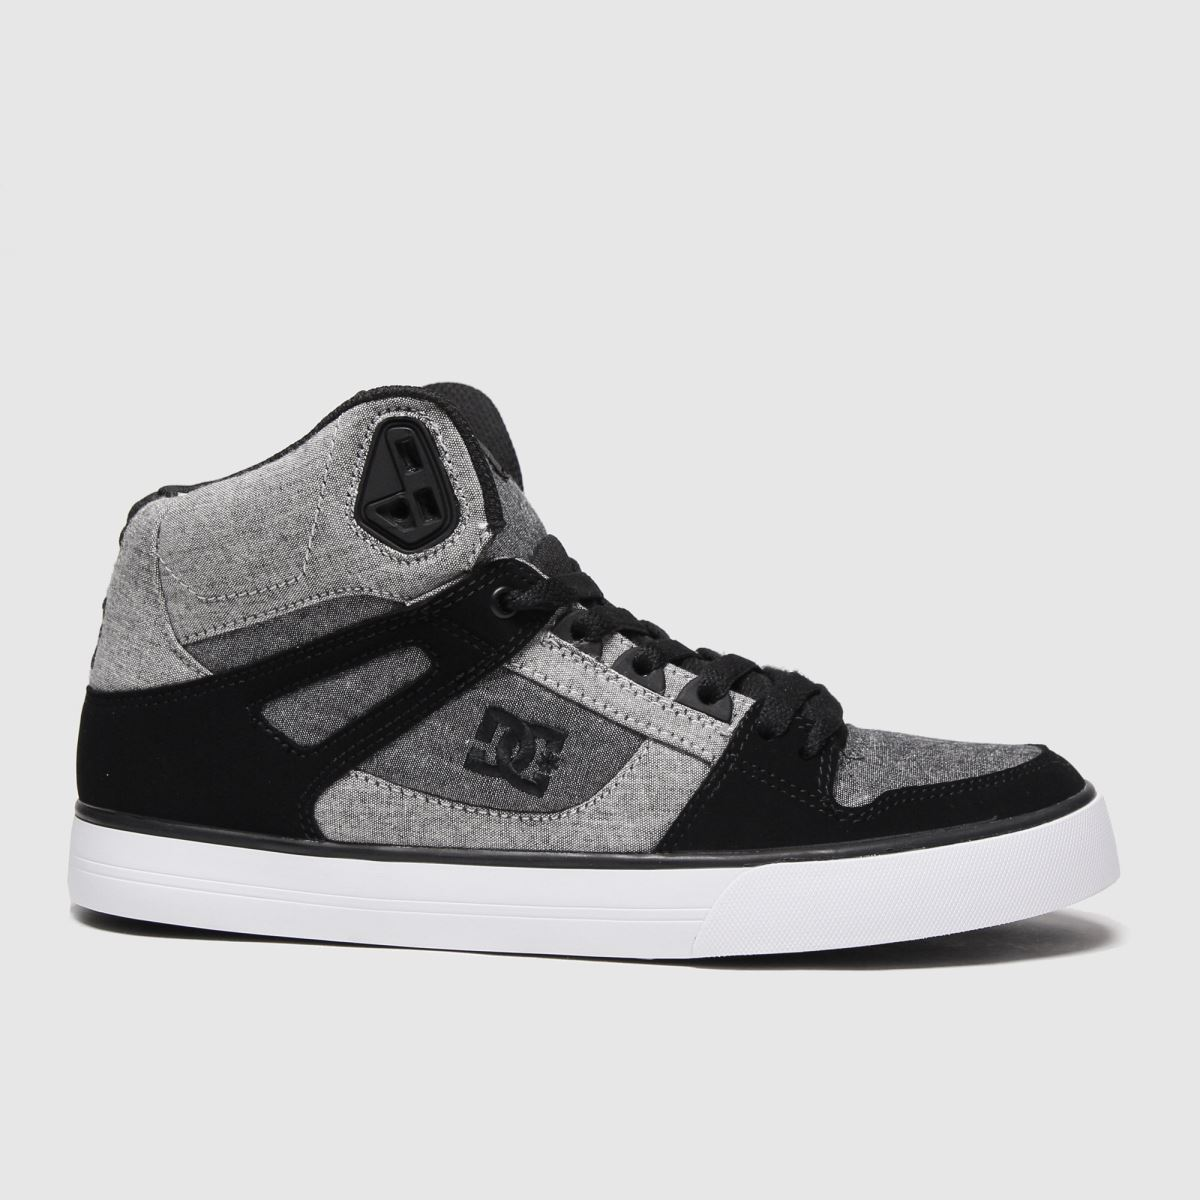 DC Black & Grey Pure High Top Wc Trainers | UK 8 | Male